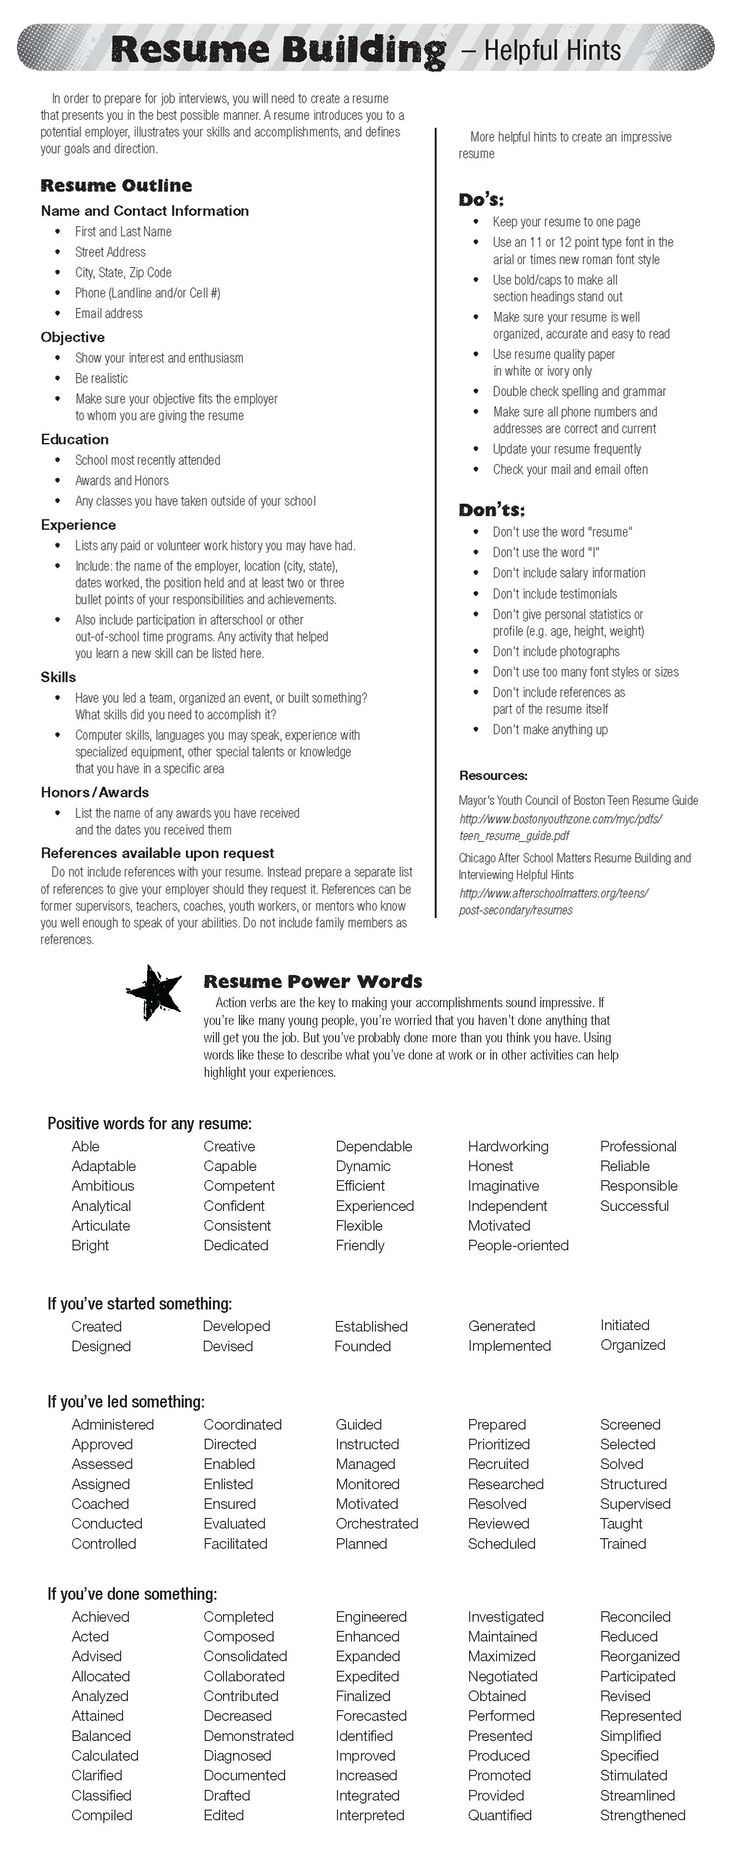 Opposenewapstandardsus  Winsome  Ideas About Resume On Pinterest  Cv Format Resume Cv And  With Hot  Ideas About Resume On Pinterest  Cv Format Resume Cv And Resume Templates With Beautiful How To Write An Objective On A Resume Also Free Download Resume Templates In Addition Professional Skills For Resume And Format For A Resume As Well As Objective Statement On Resume Additionally Retail Resume Sample From Pinterestcom With Opposenewapstandardsus  Hot  Ideas About Resume On Pinterest  Cv Format Resume Cv And  With Beautiful  Ideas About Resume On Pinterest  Cv Format Resume Cv And Resume Templates And Winsome How To Write An Objective On A Resume Also Free Download Resume Templates In Addition Professional Skills For Resume From Pinterestcom